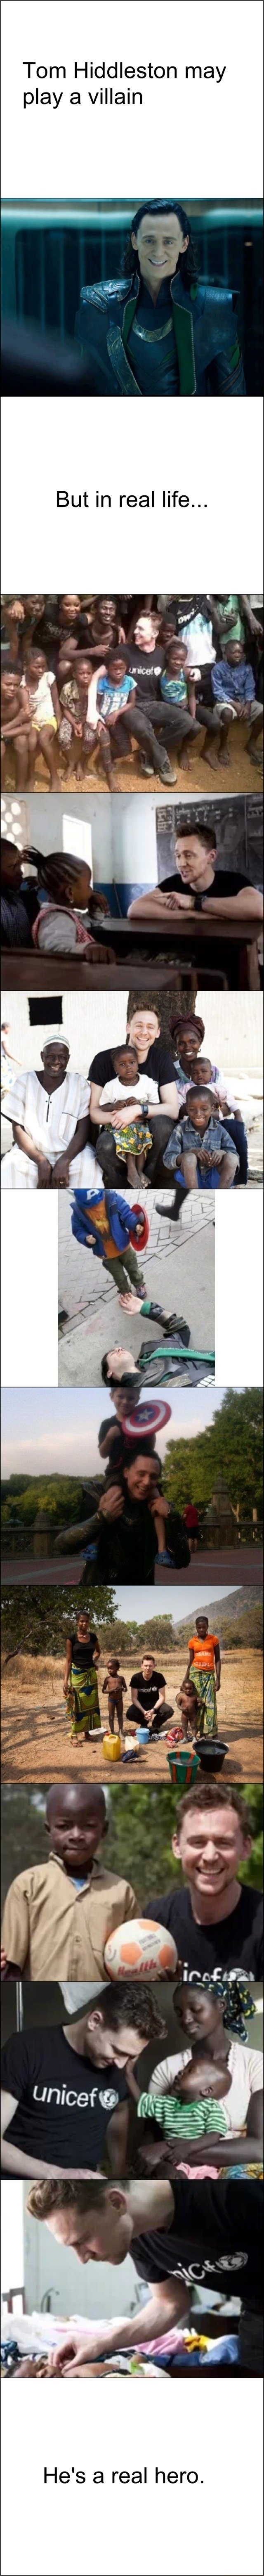 Real life hero  - funny pictures #funnypictures